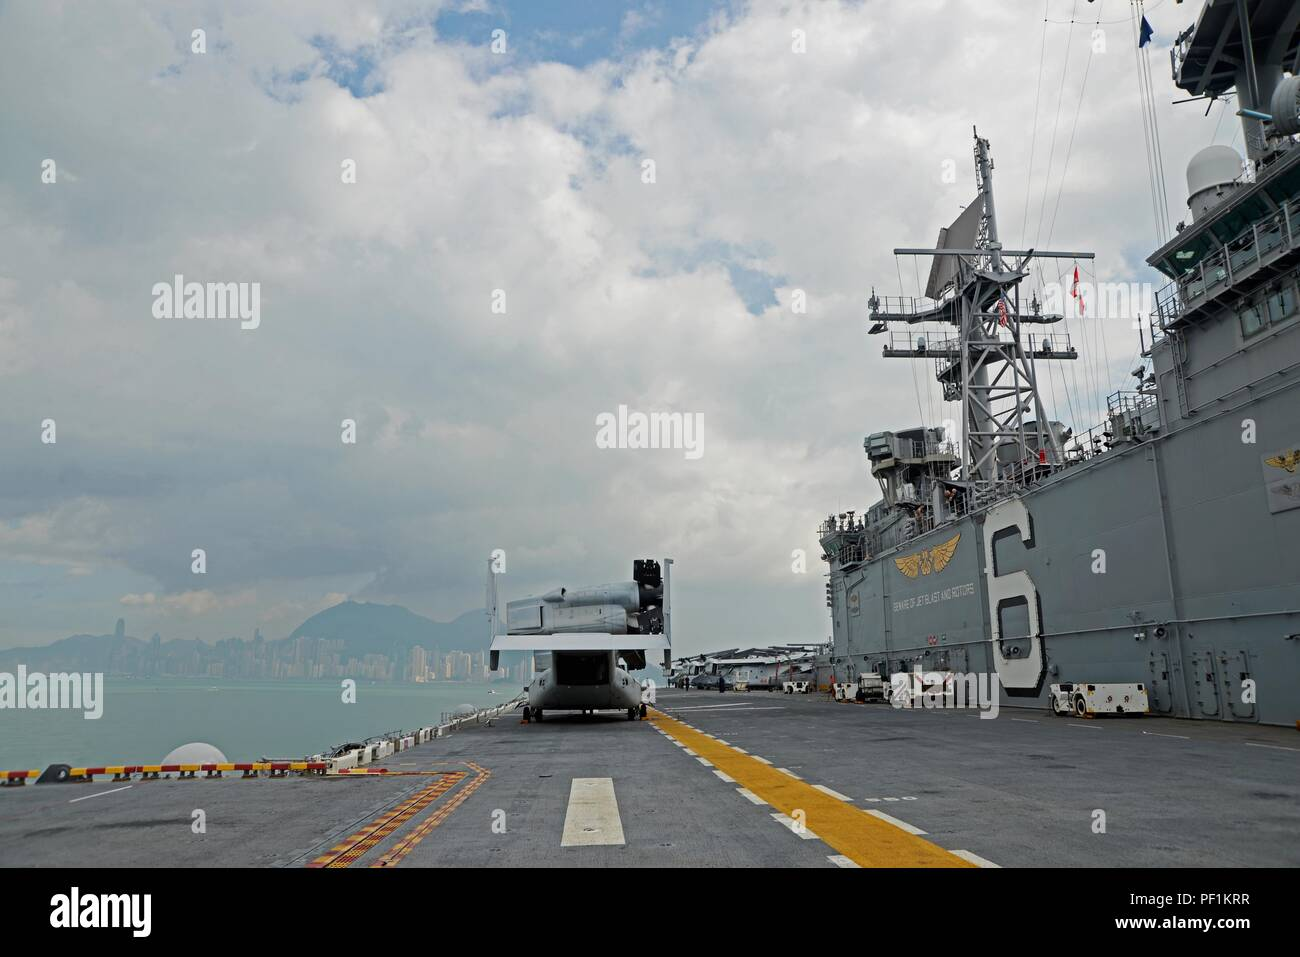 161002-N-YG104-004 HONG KONG (Oct. 02, 2016) The amphibious assault ship USS Bonhomme Richard (LHD 6) departs the harbor of Hong Kong after a scheduled port visit. Bonhomme Richard Expeditionary Strike Group, with embarked 31st MEU, was in Hong Kong to experience the city's rich culture and history as part of their multi-month patrol in the region. Stock Photo